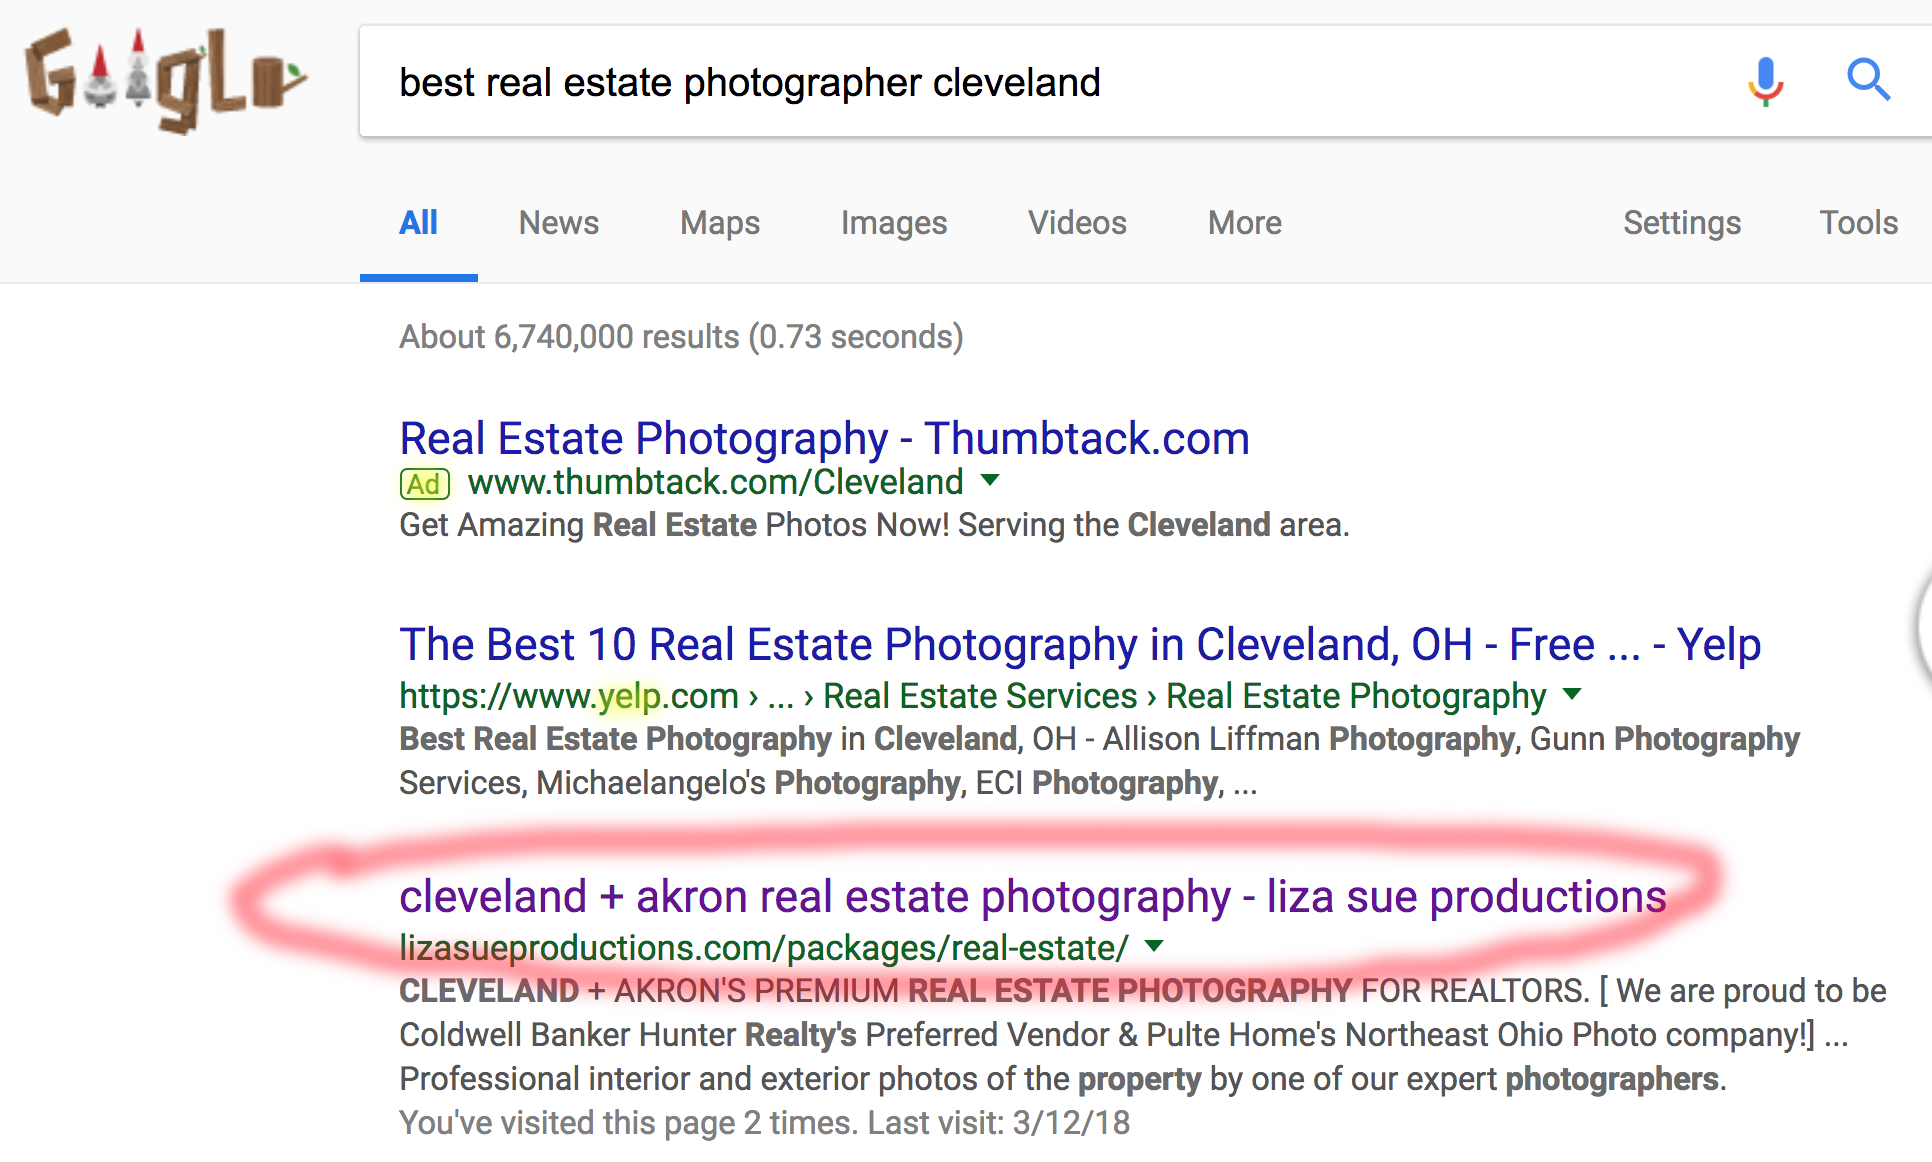 Hey that's us! Guess we're pretty good at this SEO stuff! #best Social Media Marketing Company Cleveland + akron